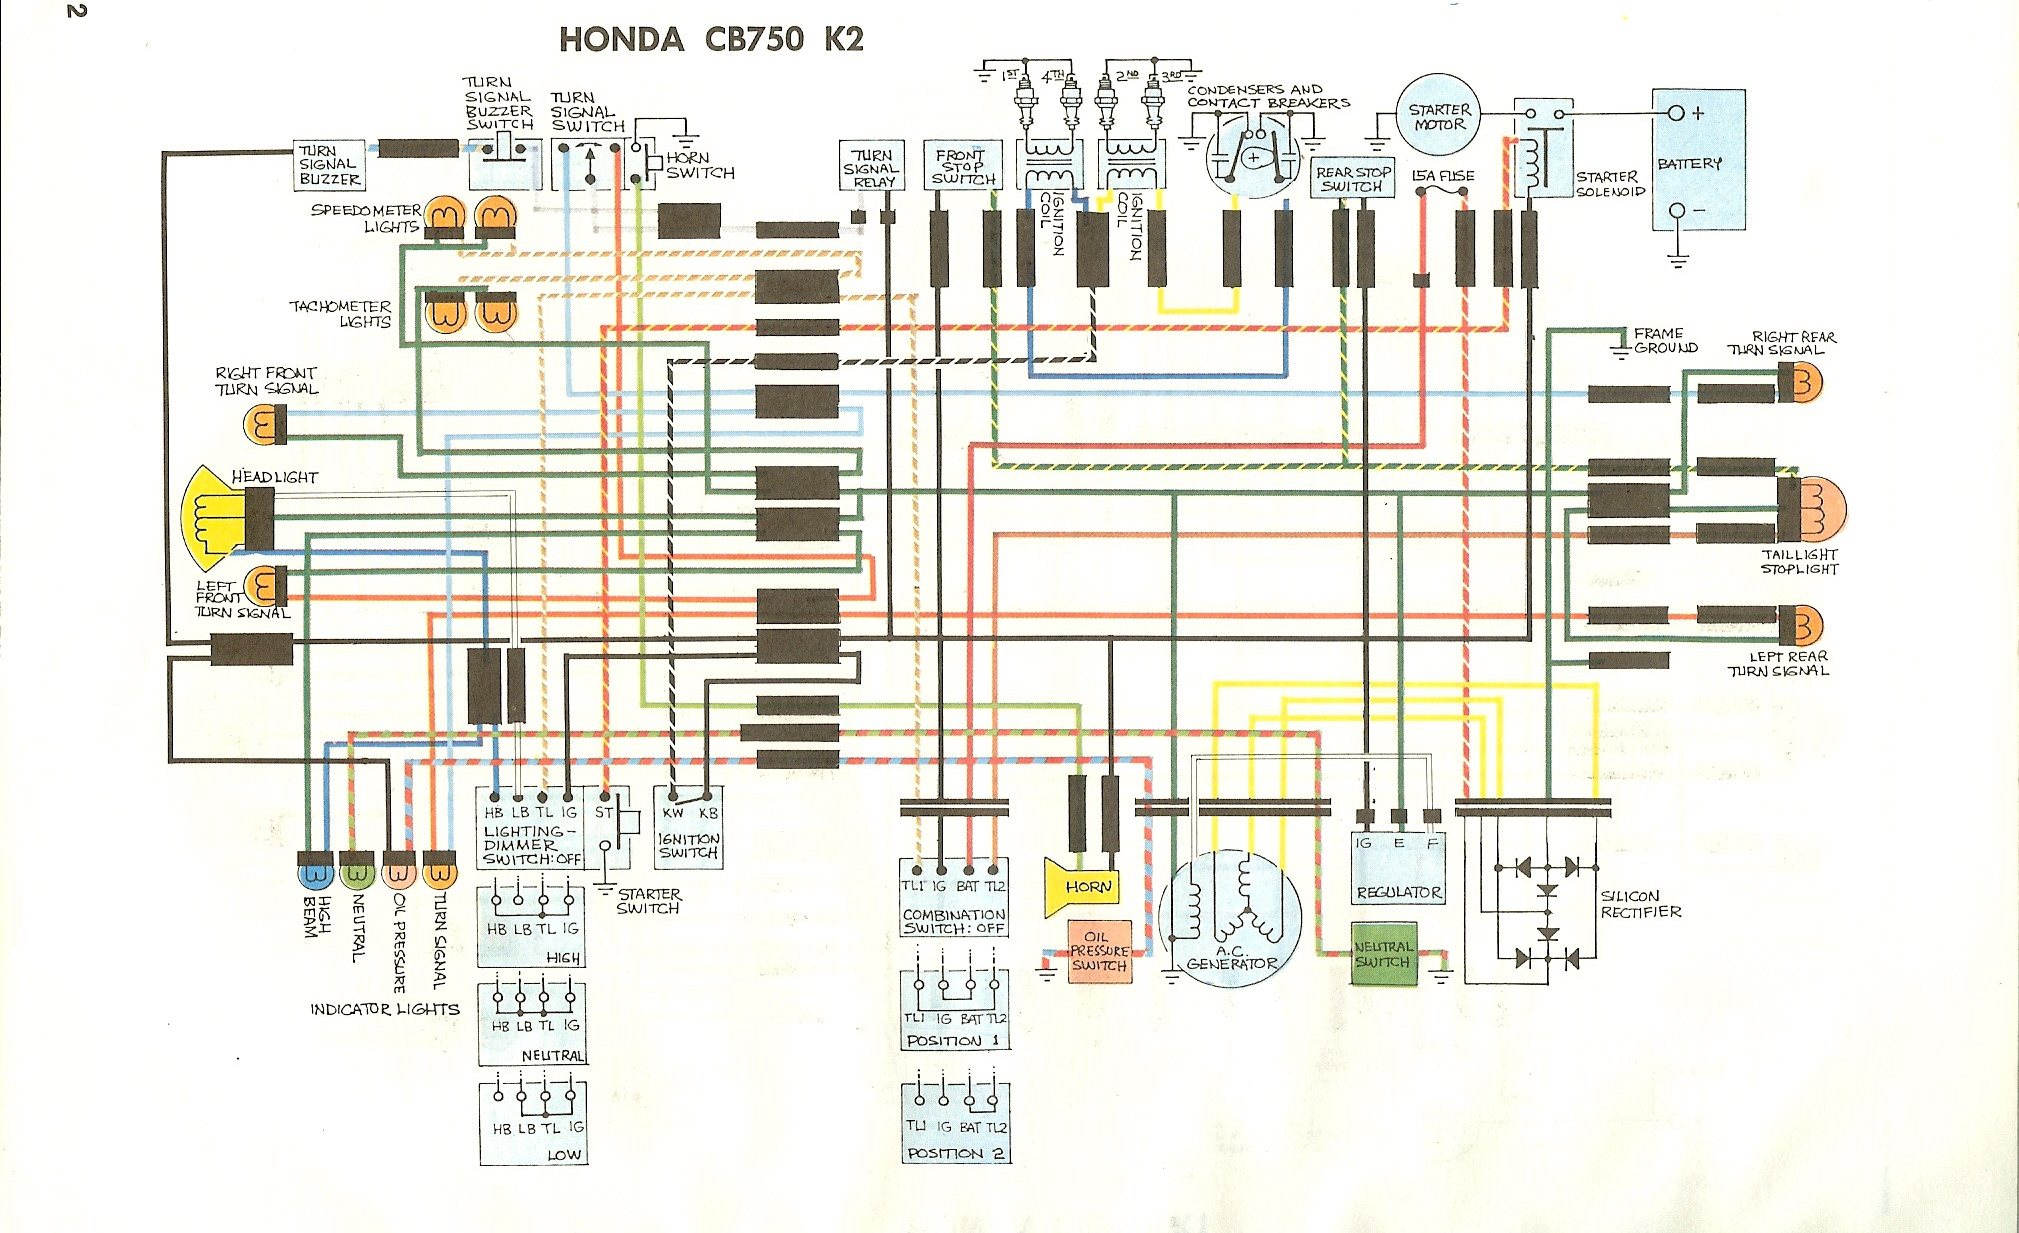 1974 cb750 wiring diagram basic wiring diagram u2022 rh rnetcomputer co